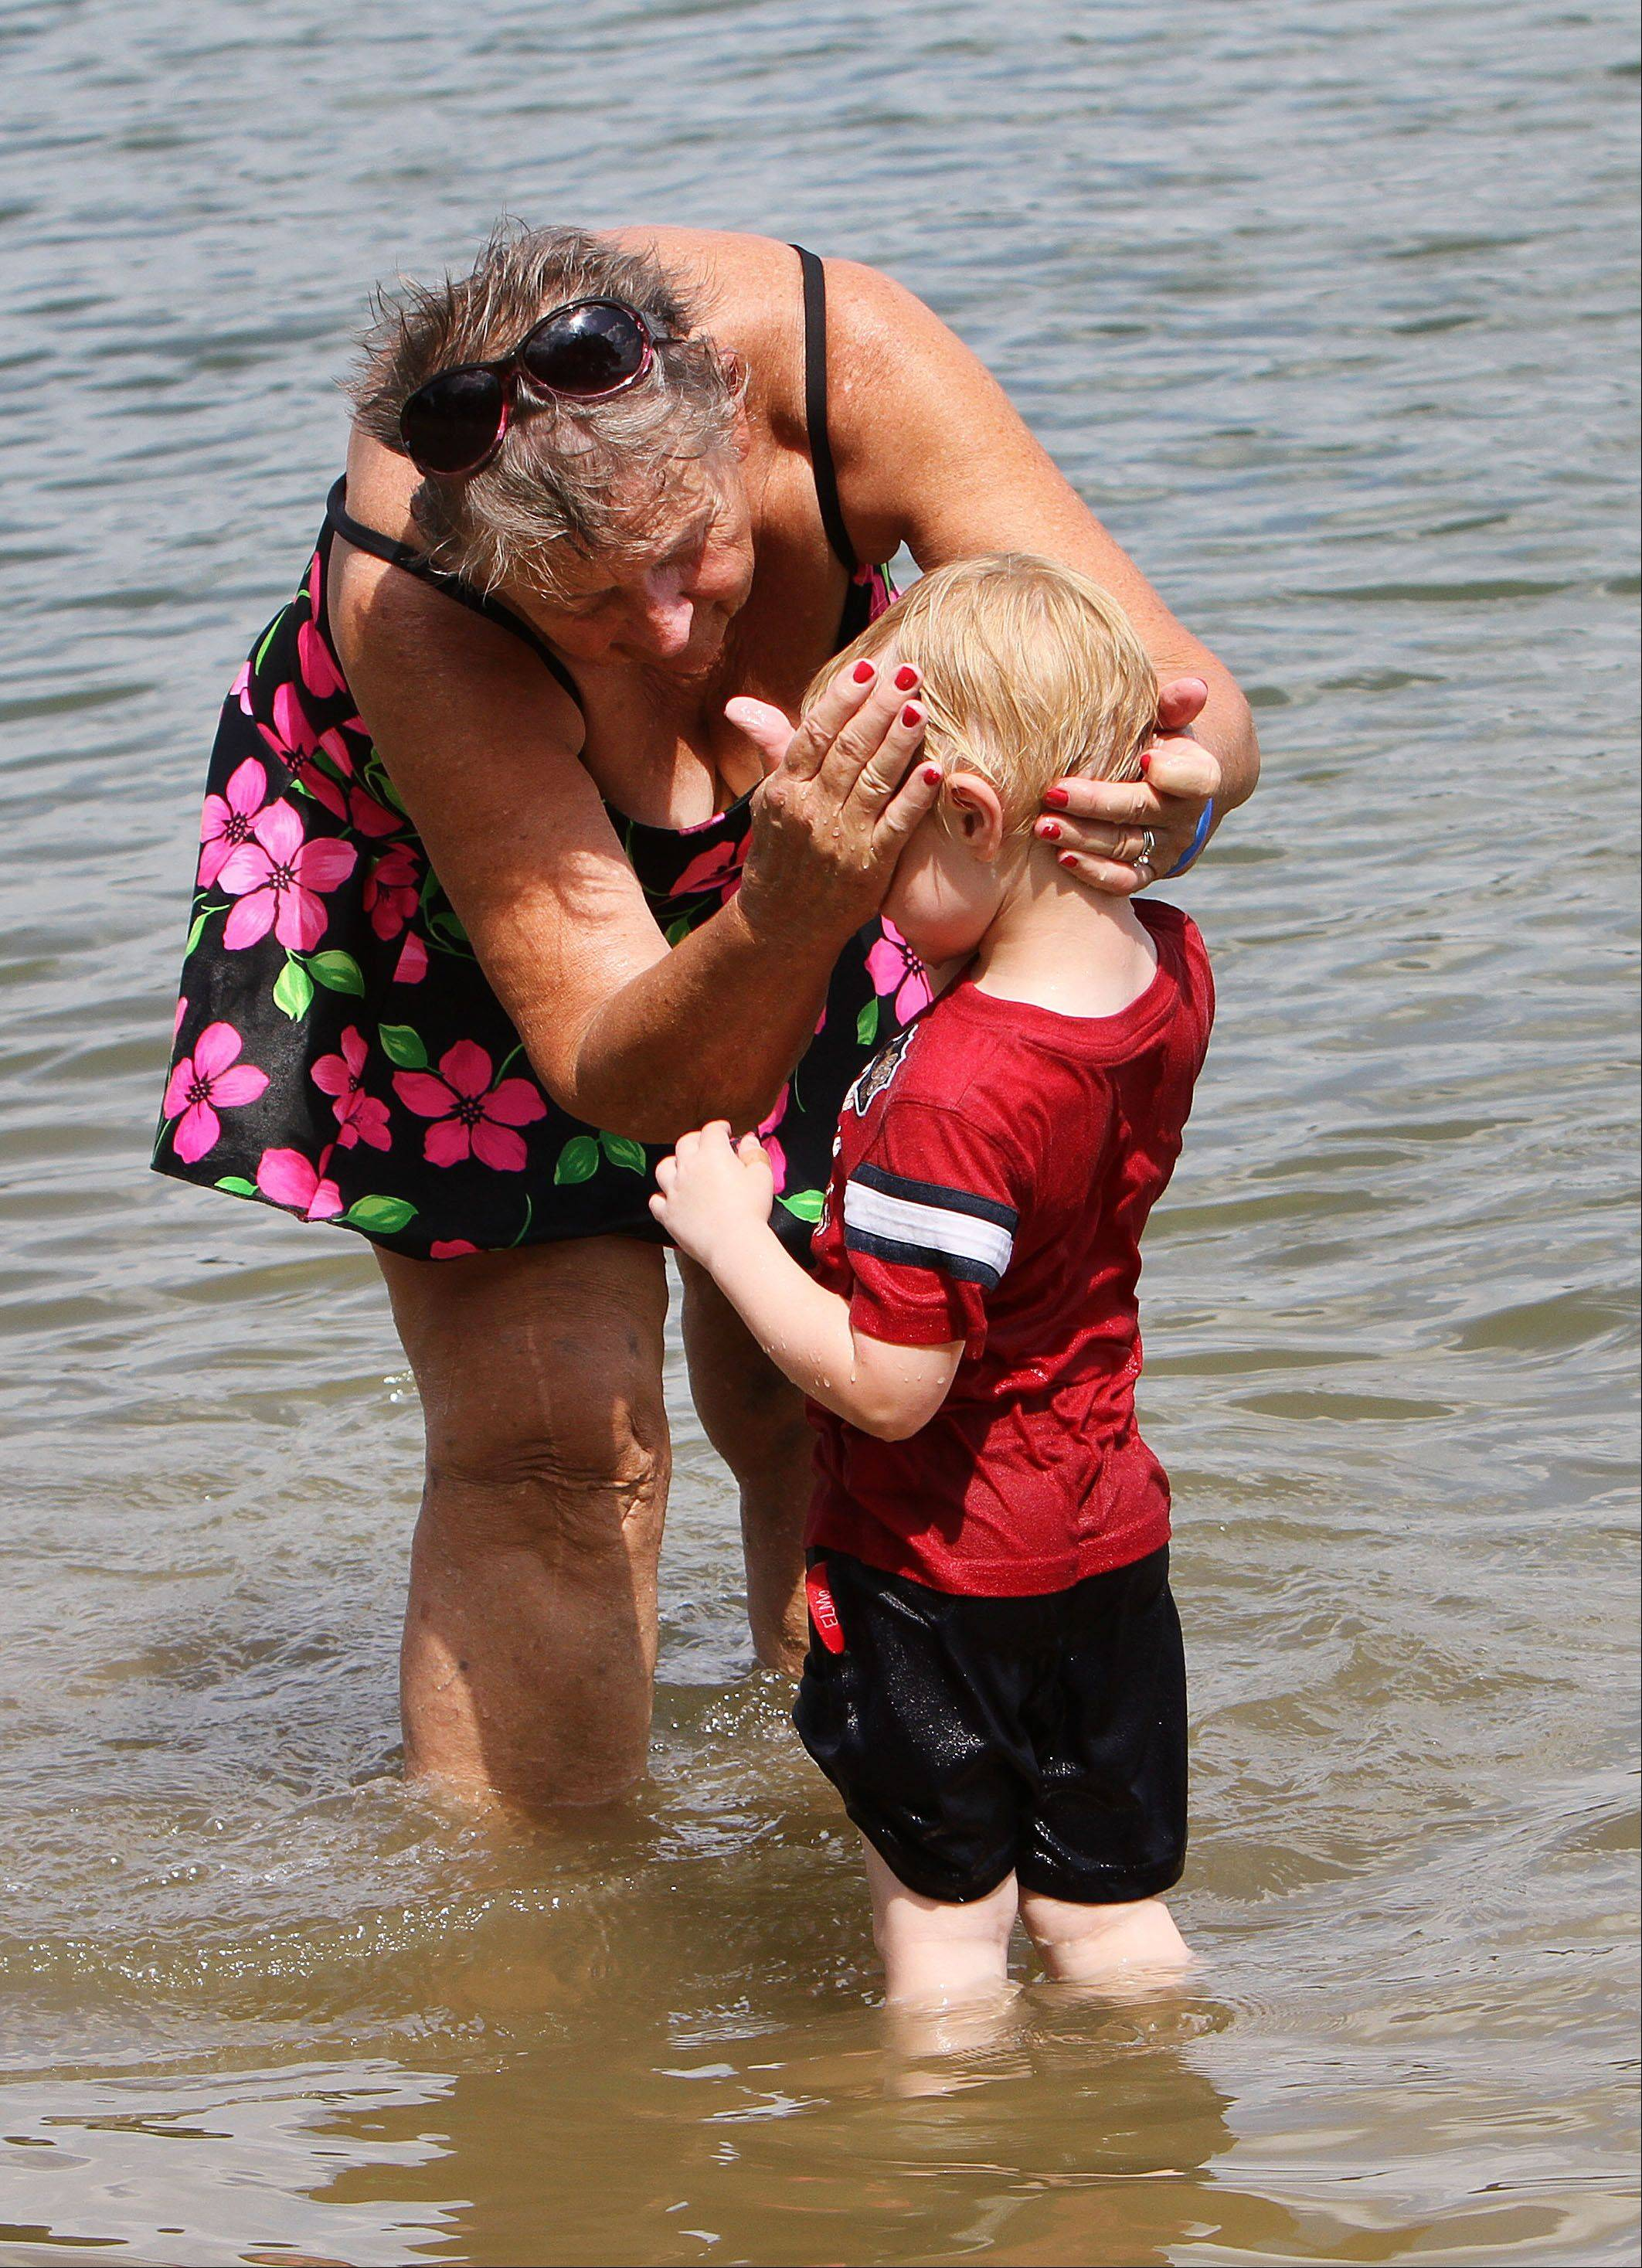 Marge Murin of Lake Zurich pours water on her grandson, Dan Murin, at Paulus Park Beach in Lake Zurich.